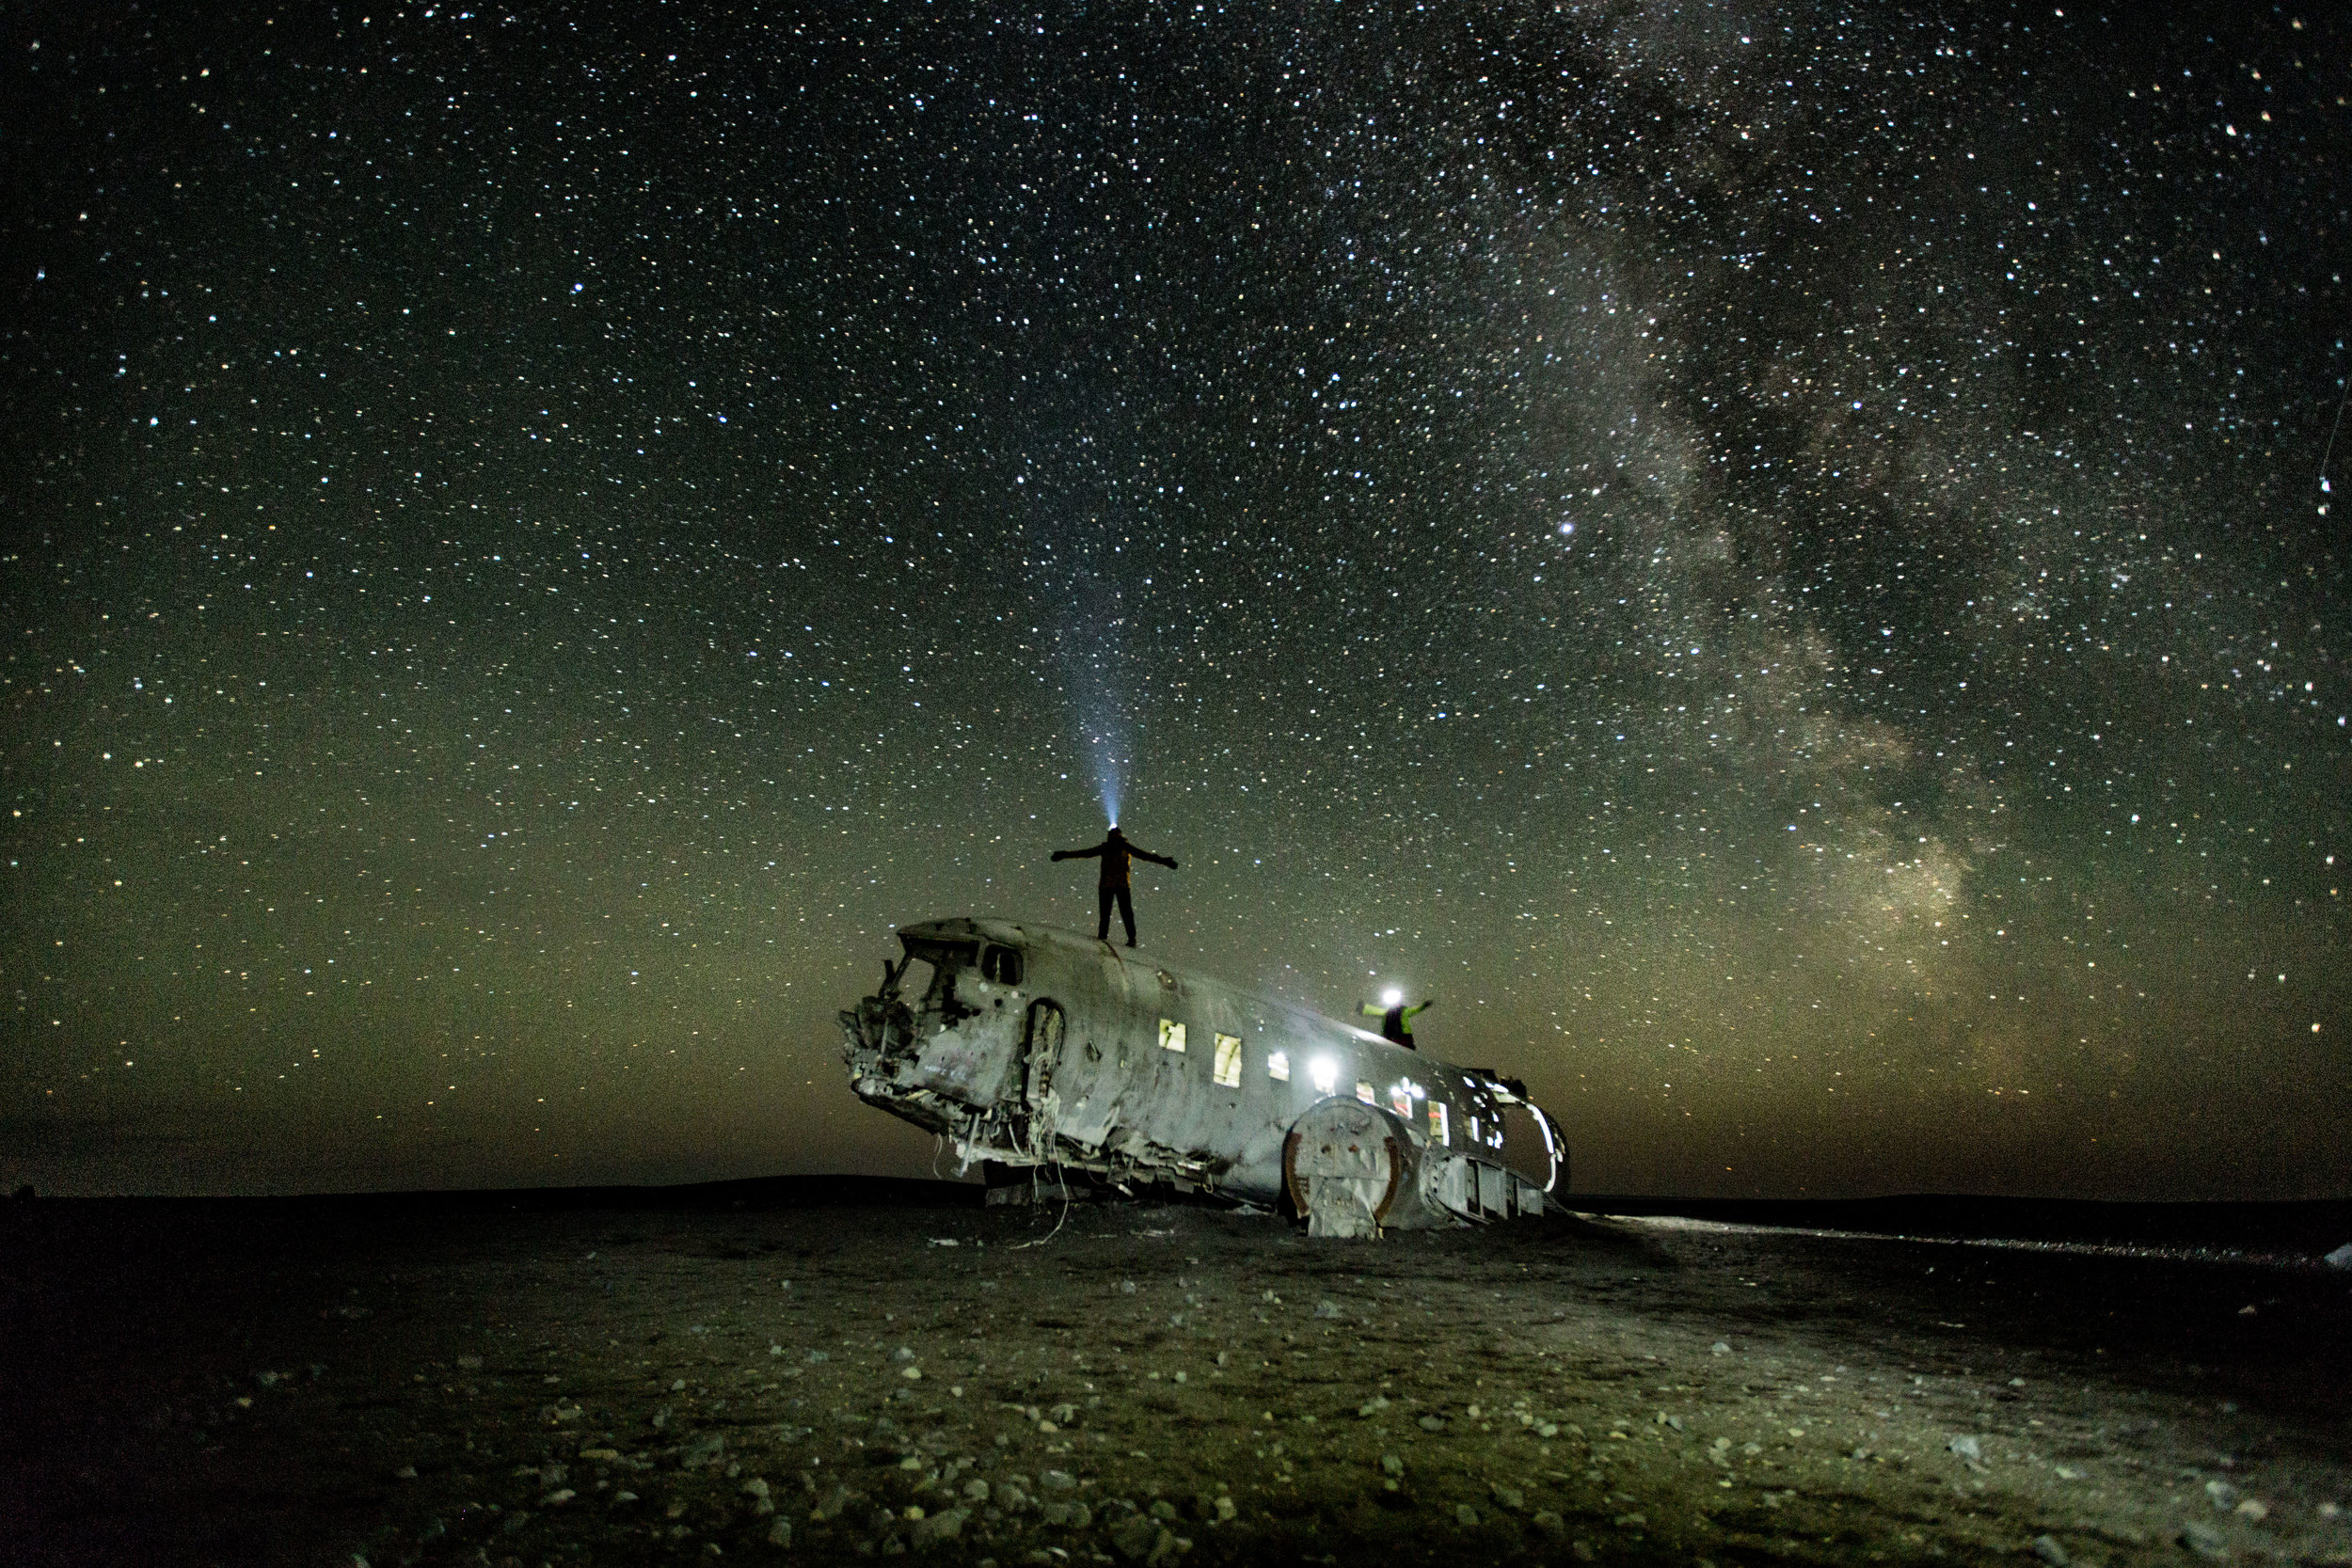 Plane Wreck by night II